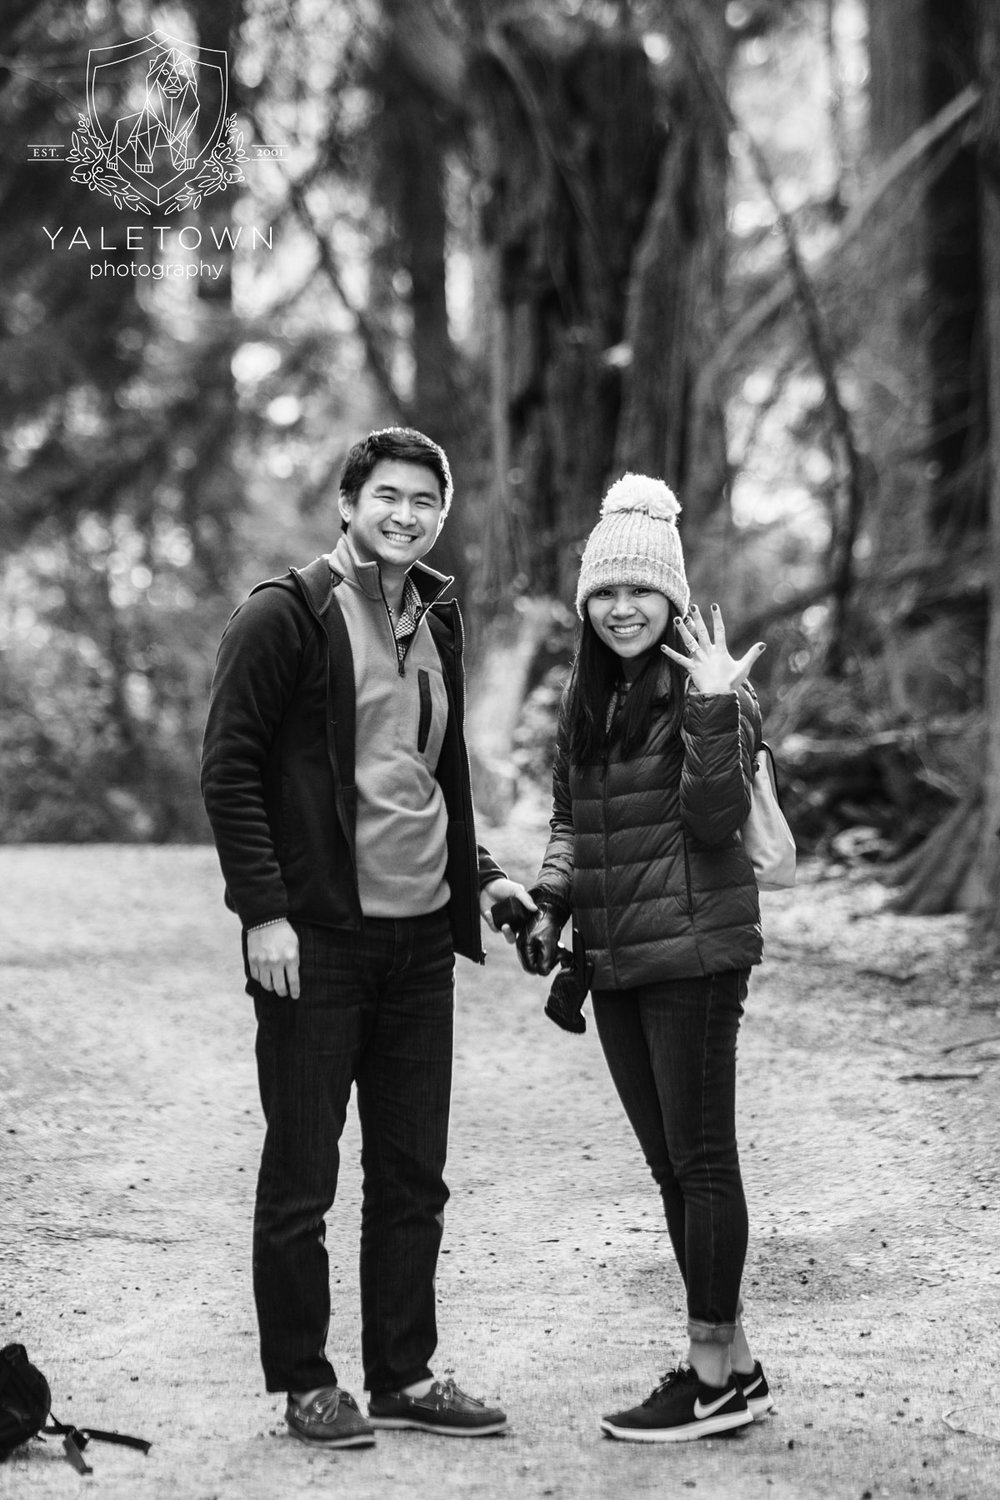 Wedding-Proposal-Vancouver-Stanley-Park-Wedding-Photographer-Vancouver-Yaletown-Photography-Photo-13.JPG